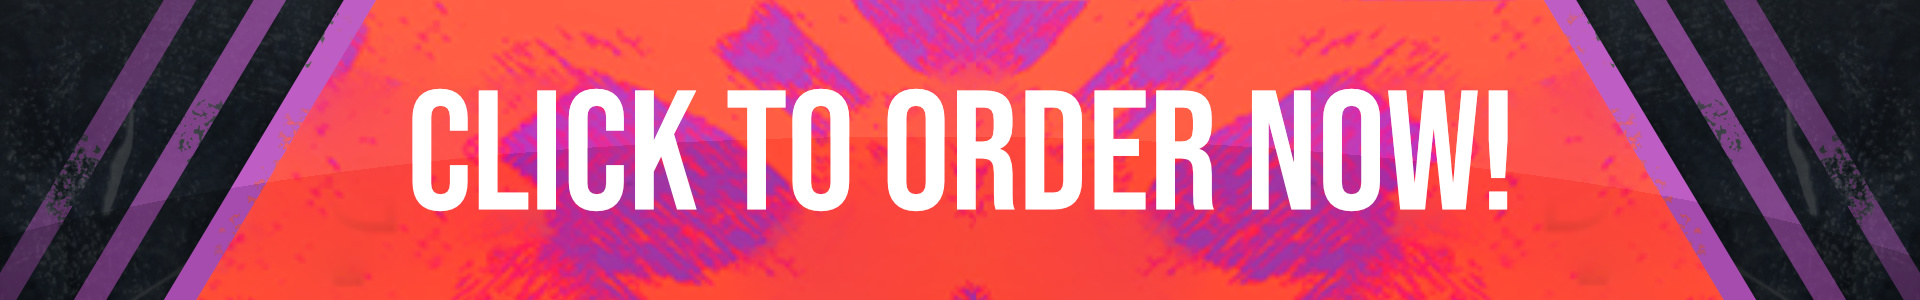 Click To Order NOw - Banner.jpg